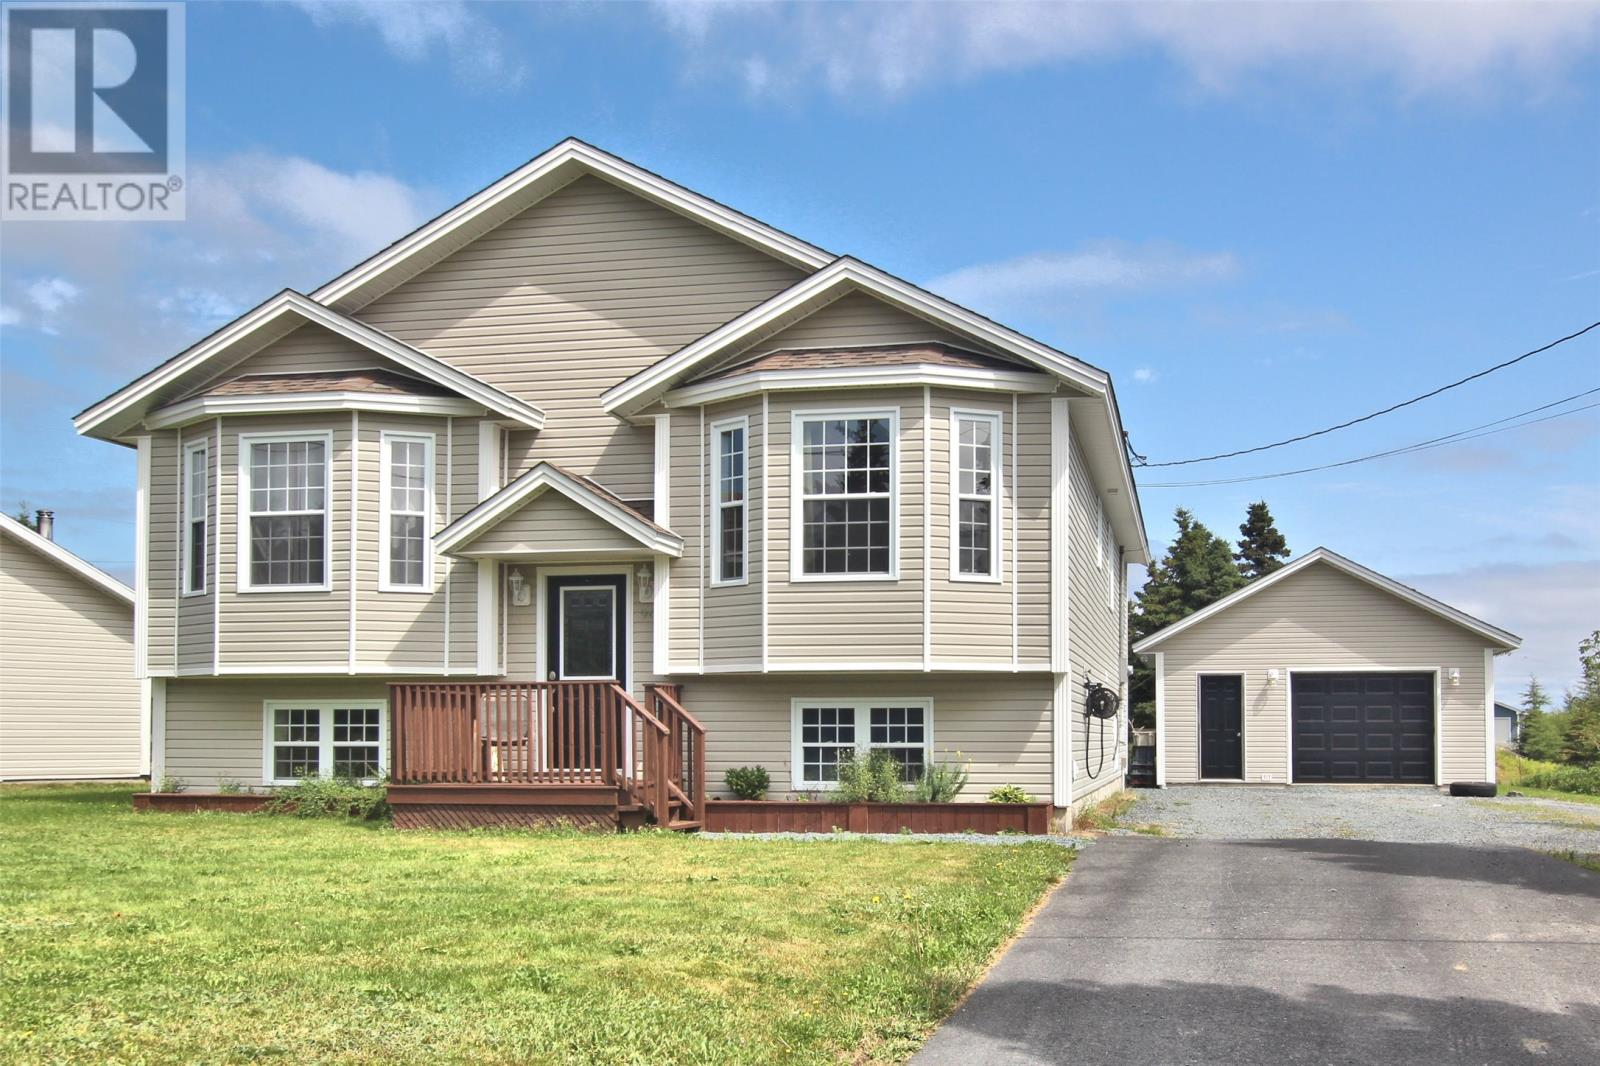 Removed: 90 Greens Road, Bay Roberts, NL - Removed on 2019-02-14 04:12:11